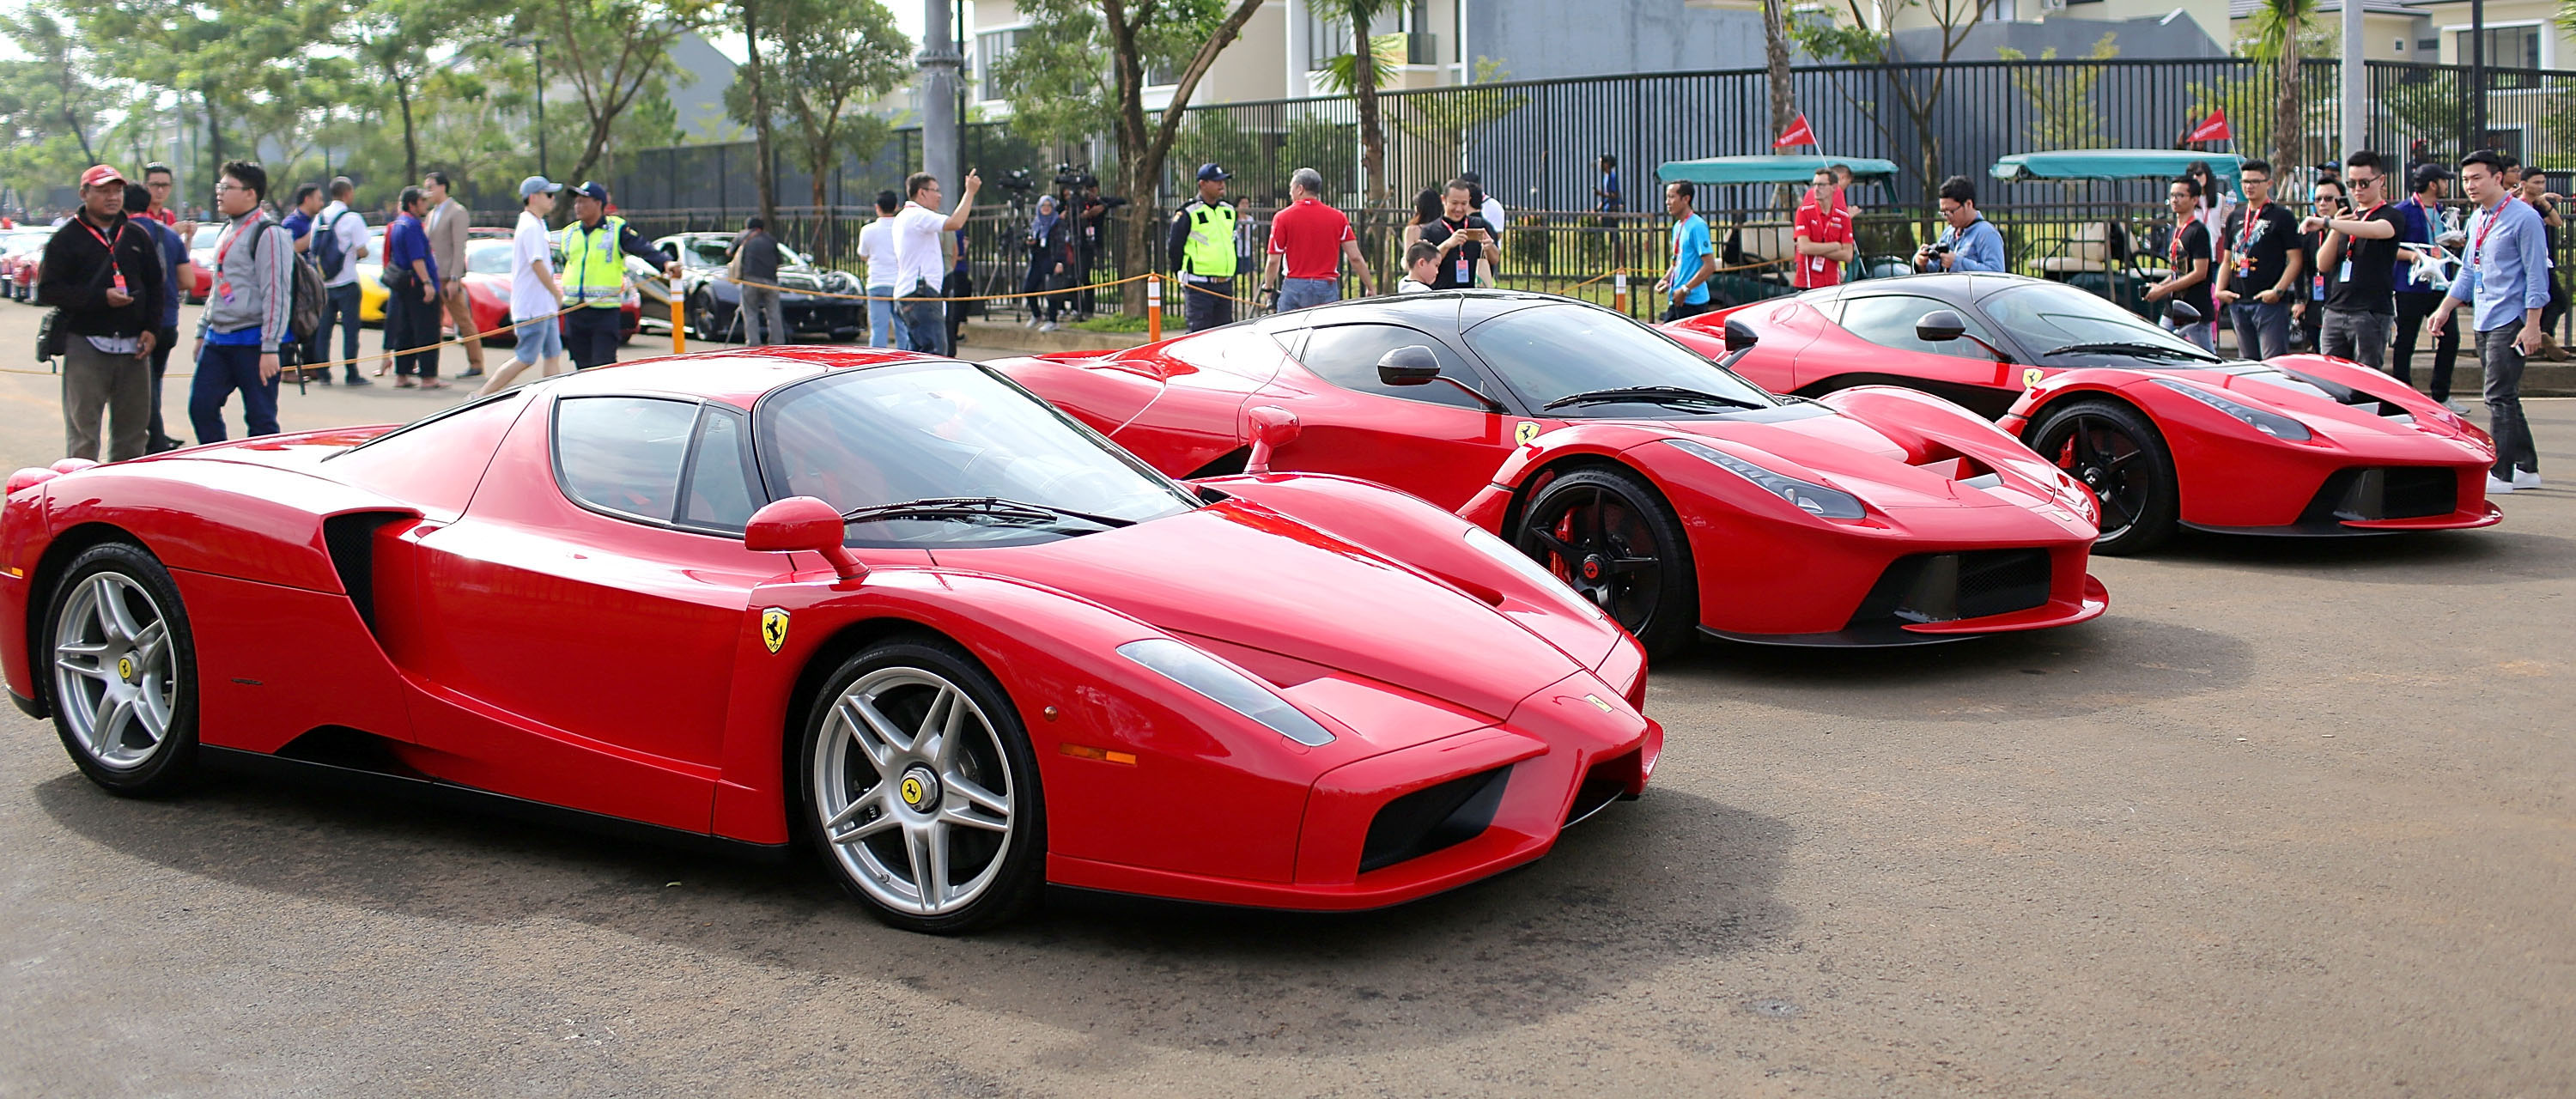 170152-car-festival_of_speed_indonesia.jpg